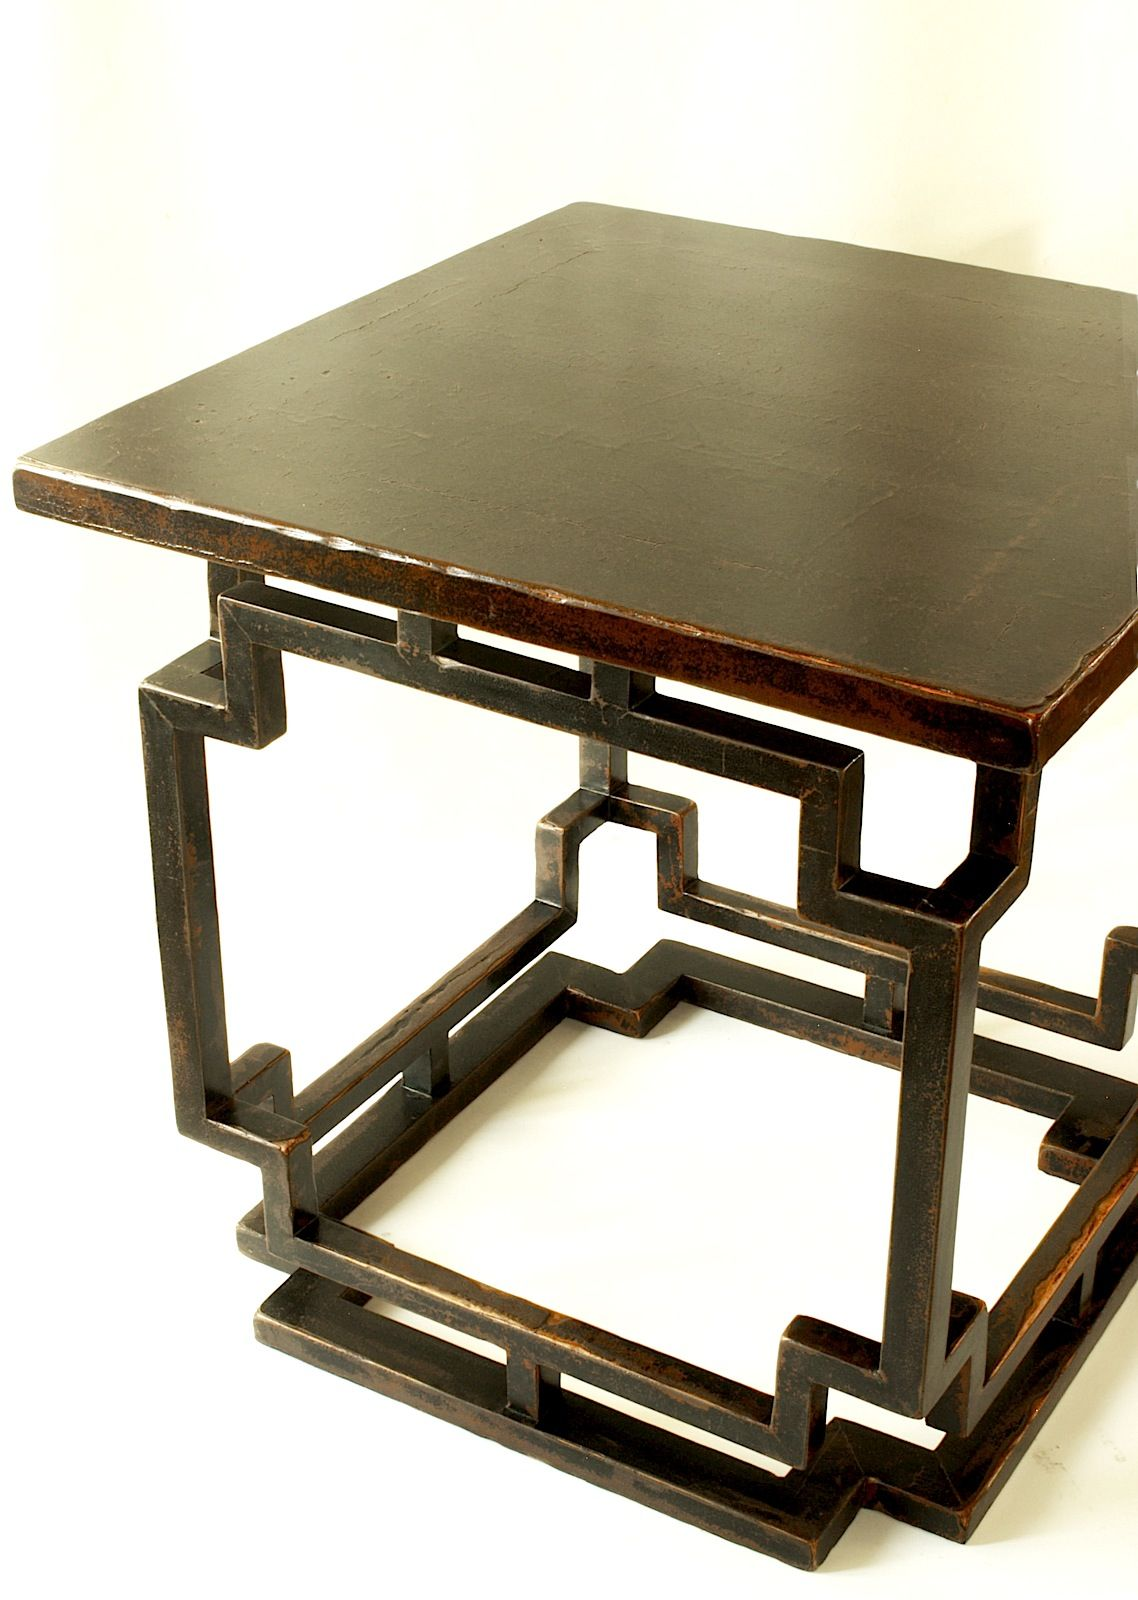 Antique Chinese Black Lacquer Square Table Leather Coffee Table Coffee Table Images Types Of Coffee Tables